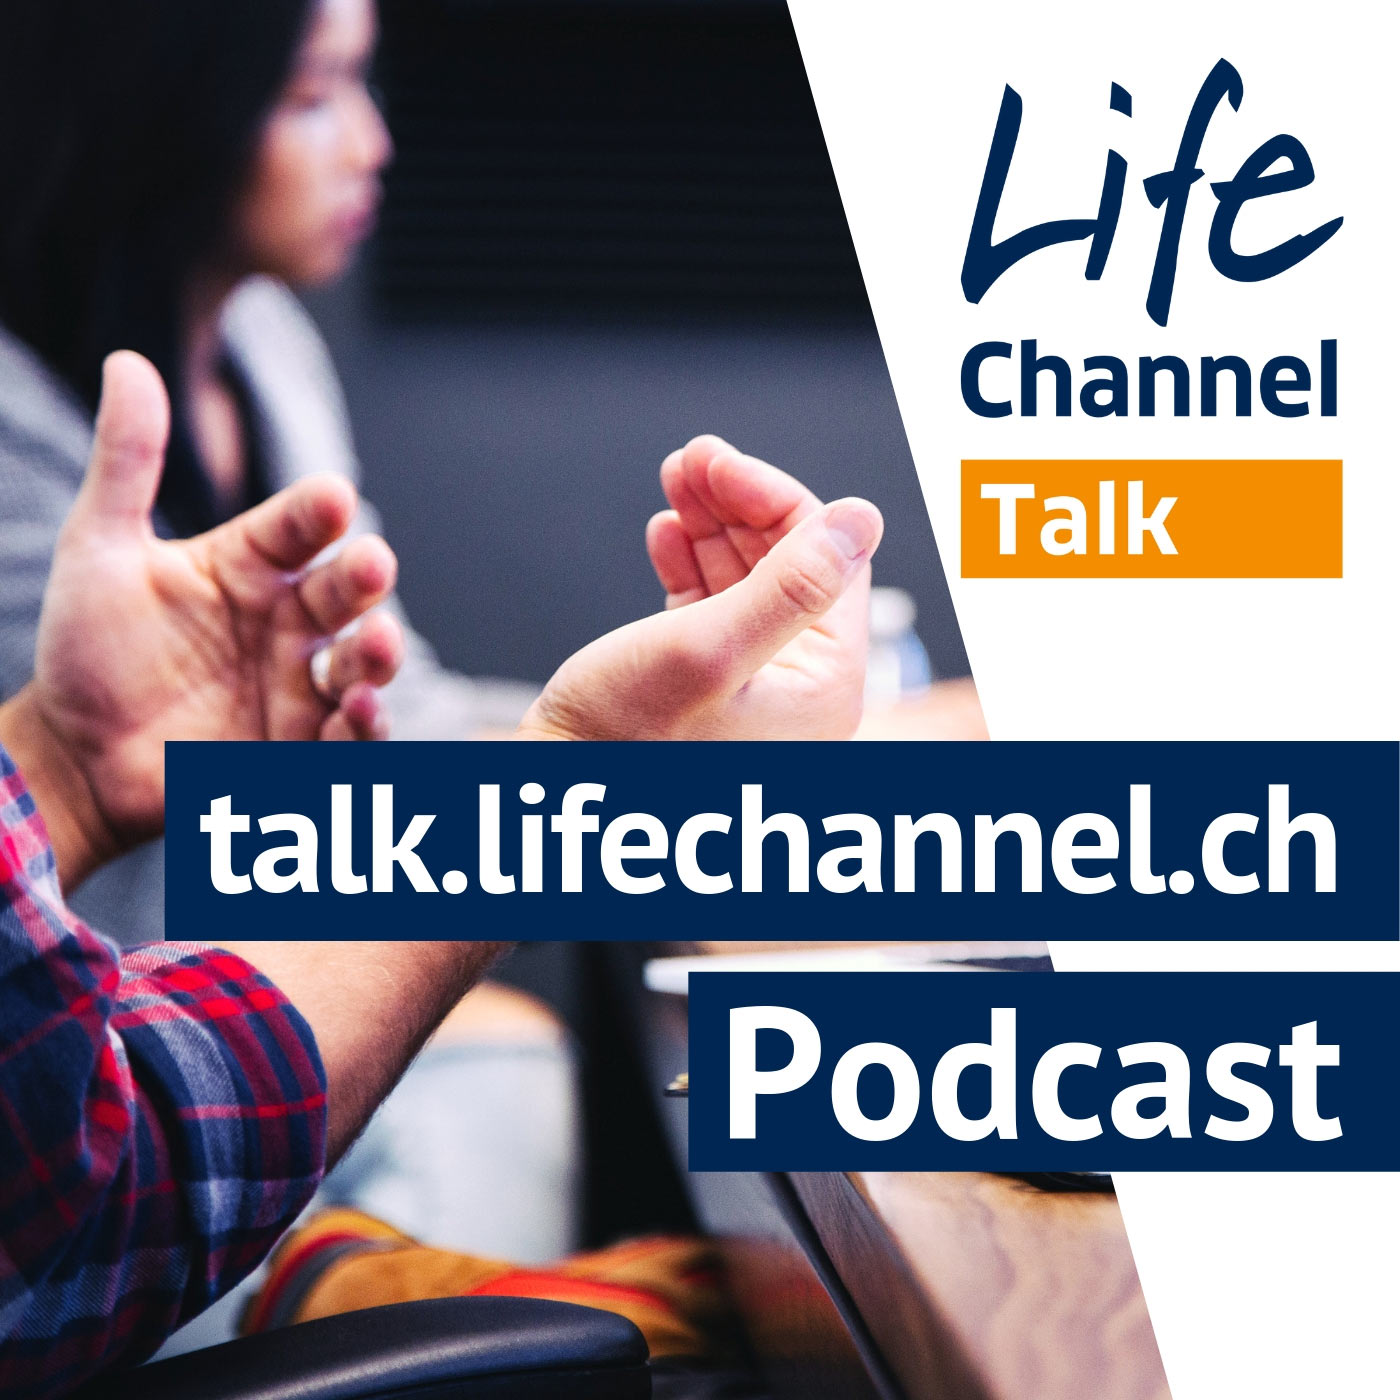 Podcast Life Channel Talk | (c) ERF Medien